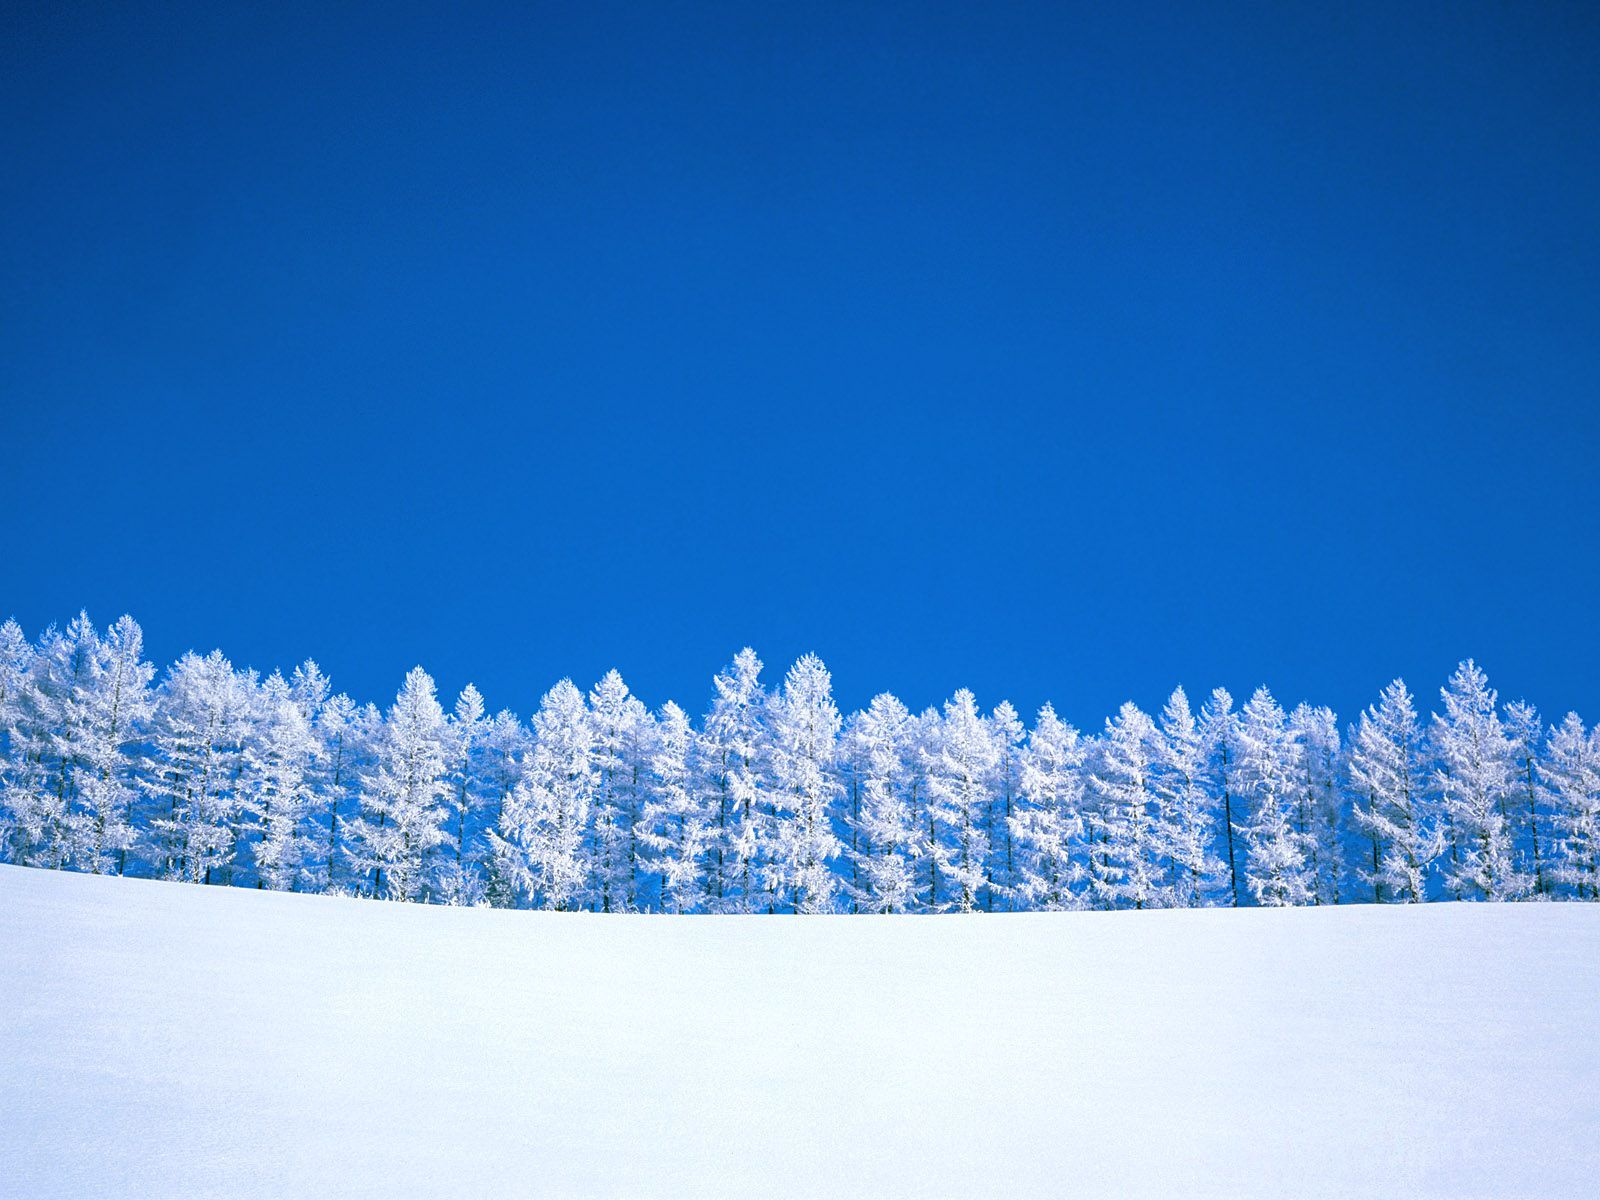 Beautiful Winter Snow Full HD Nature Background Wallpaper for Laptop ...